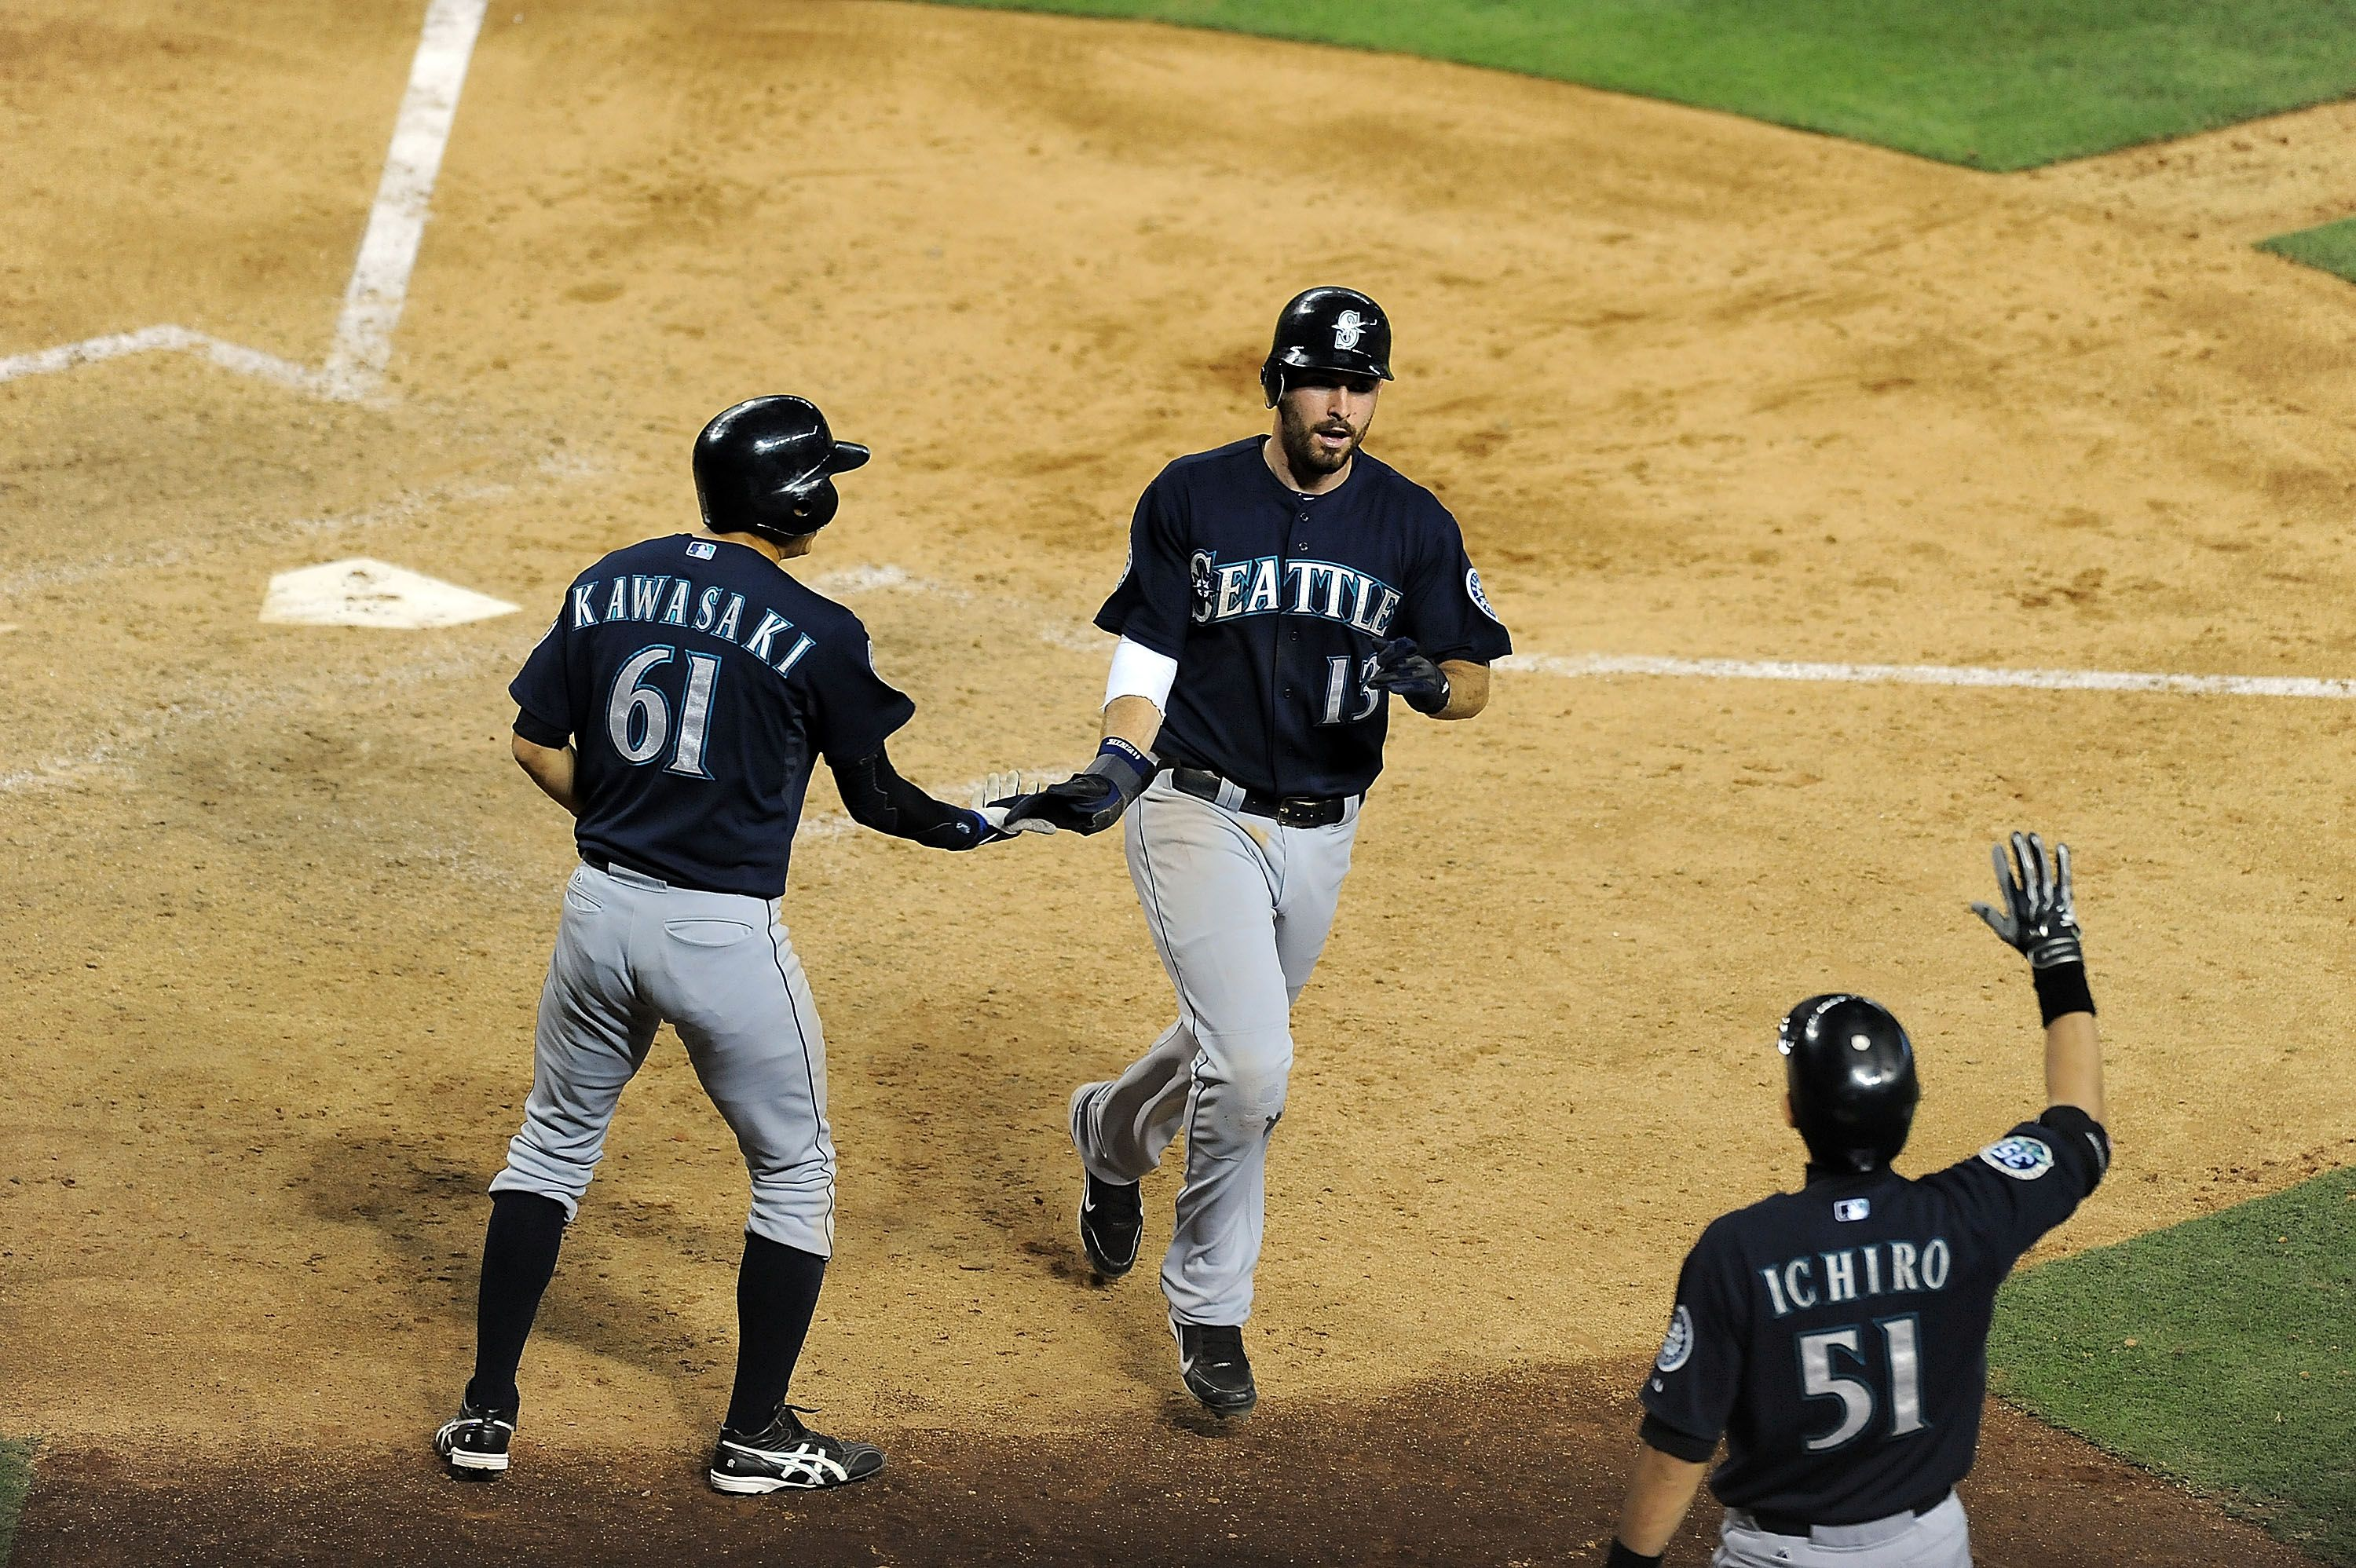 Mariners Push 3 Across In The 10th To Win A 12 9 Slugfest In Arizona 6 19 12 Mariners Seattle Mariners Sports